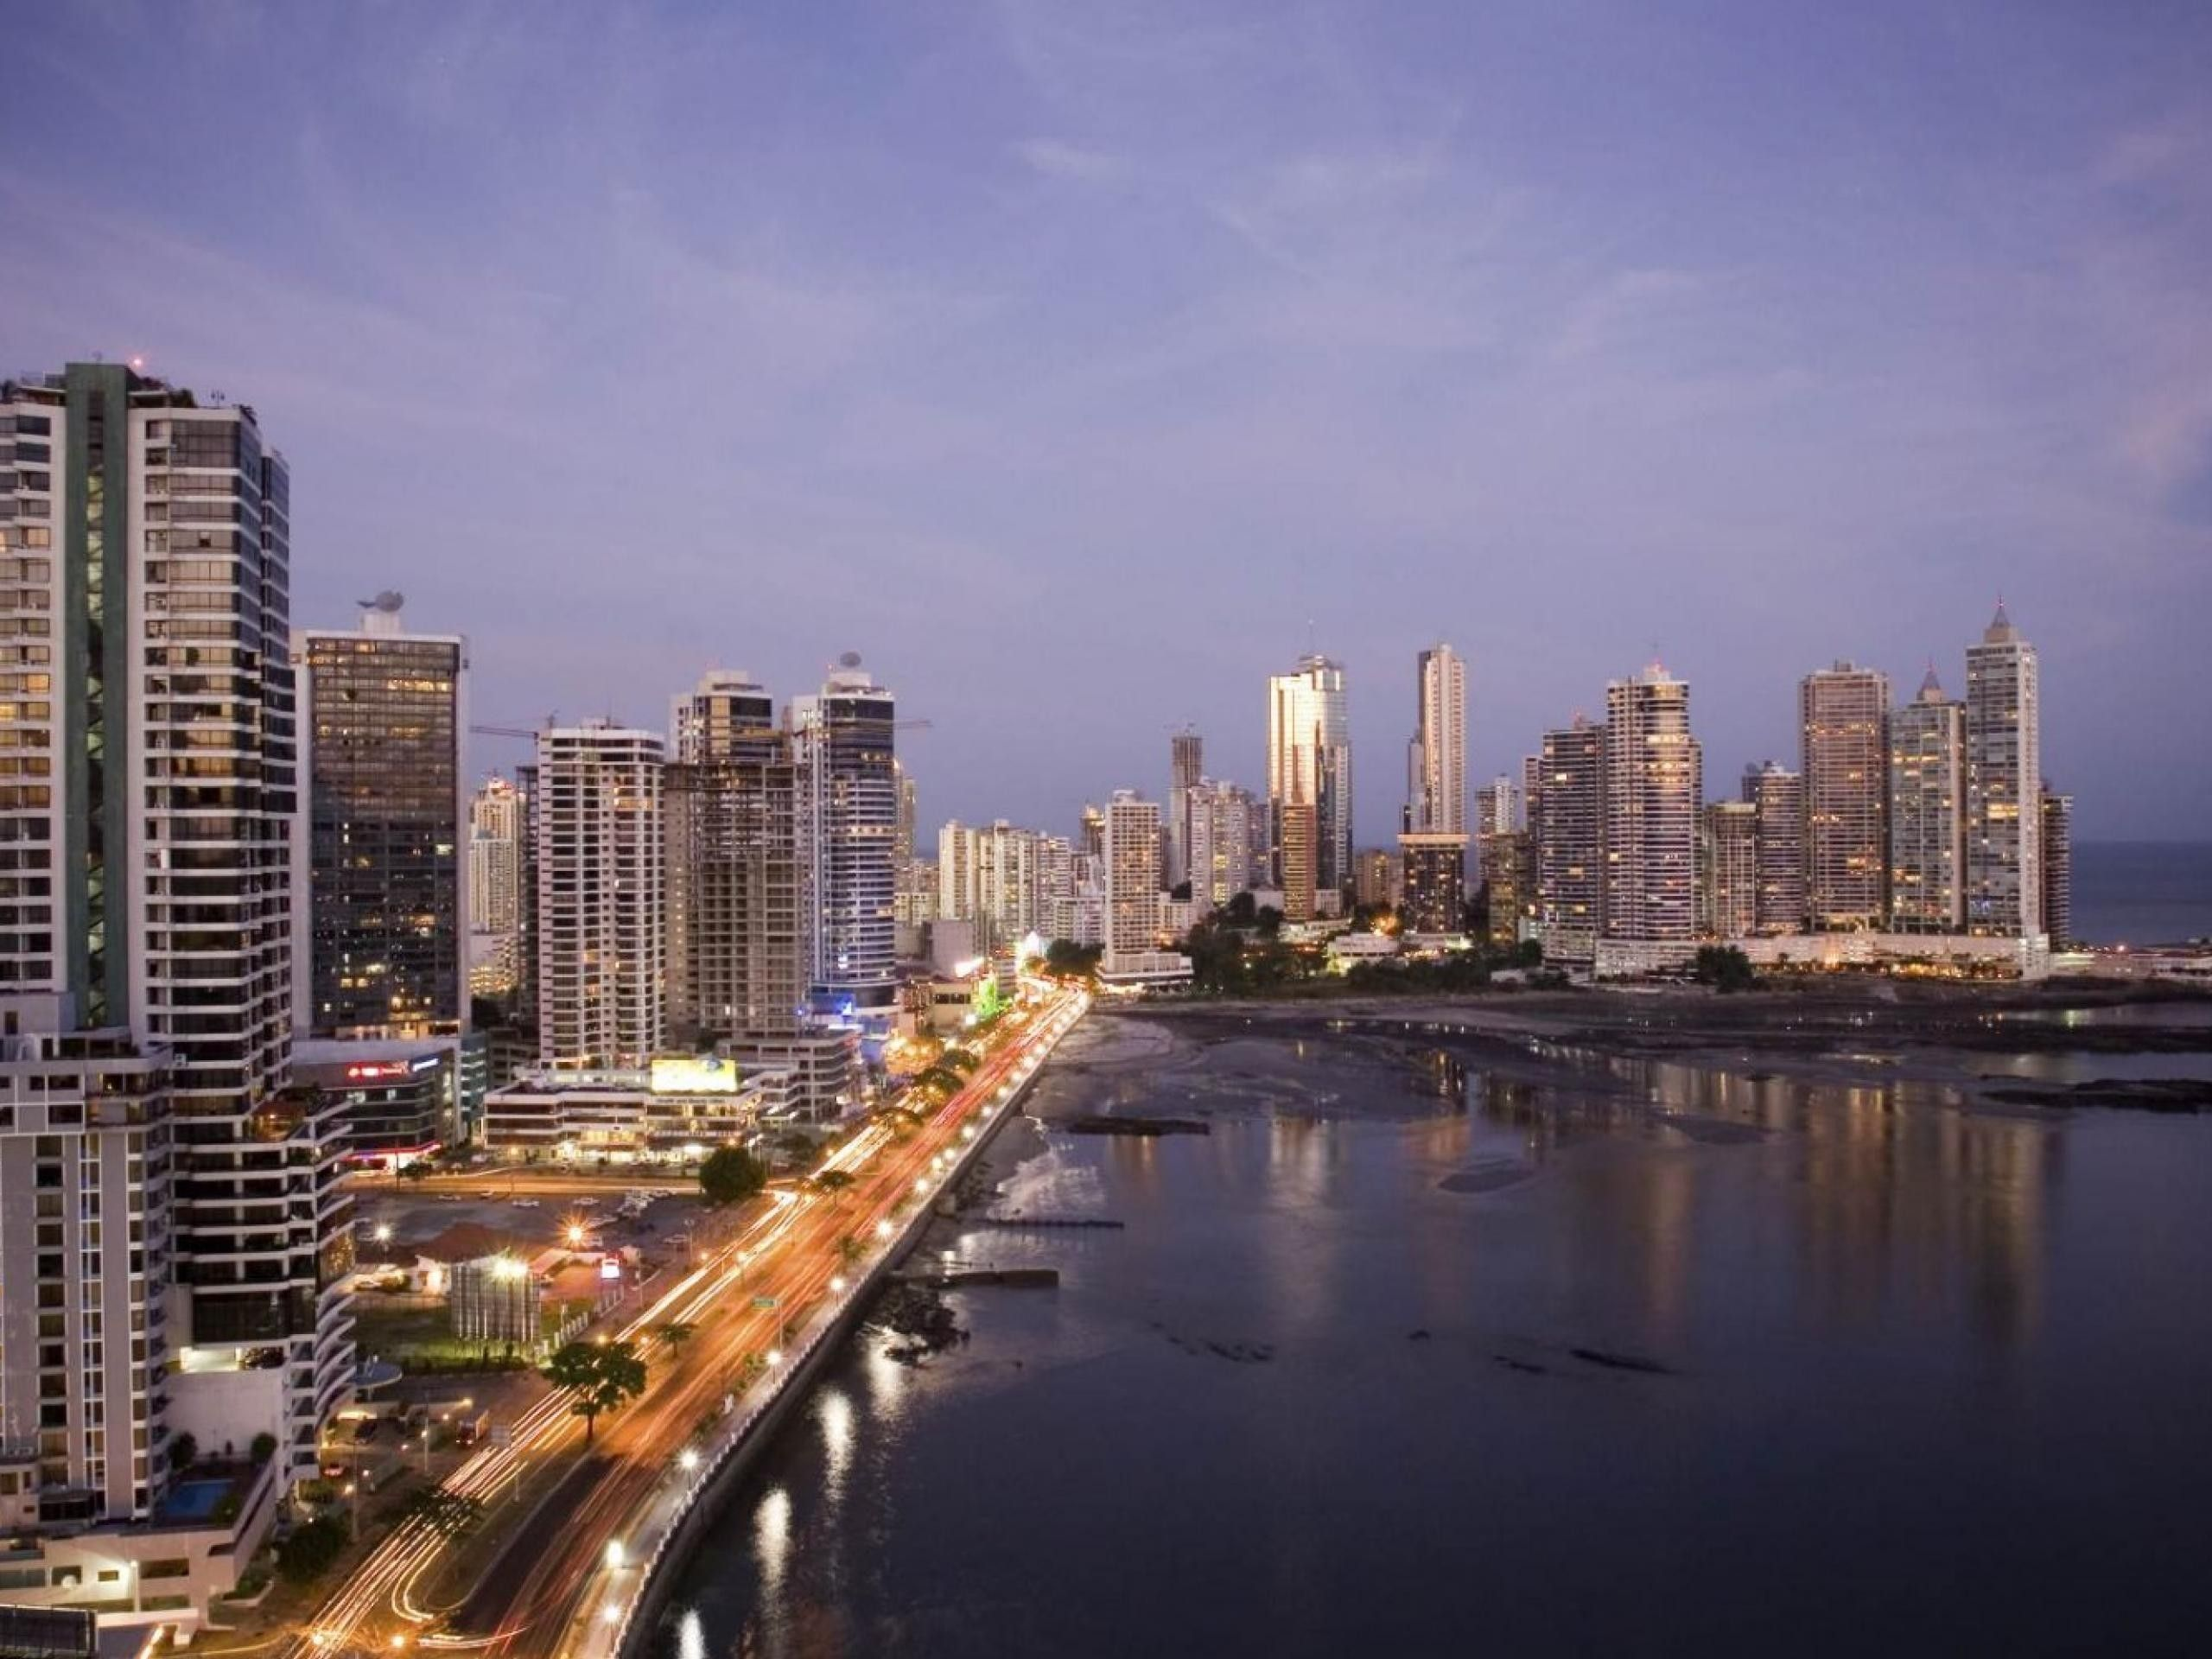 panama city muslim Get accurate prayer times in panama and azan with exact namaz time of fajr, dhuhr, asr, maghrib, isha also get sunrise time in panama search for a city or zip to set your location.